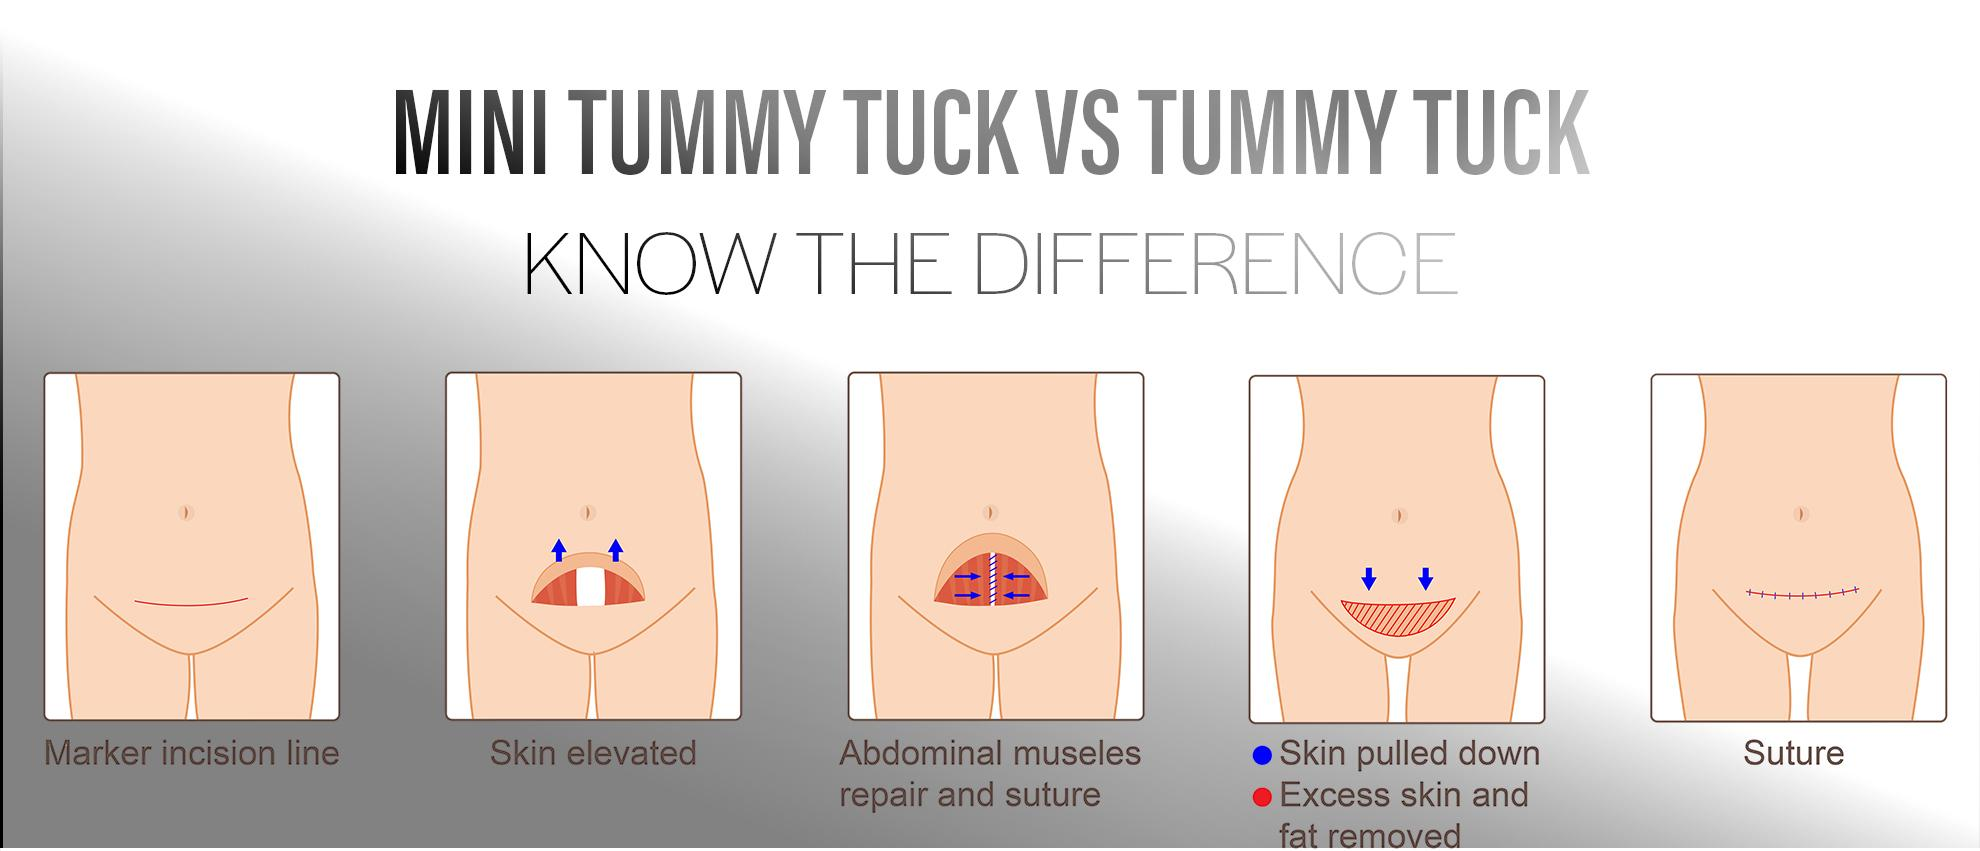 What's The Difference Between A Mini and Full Tummy Tuck?